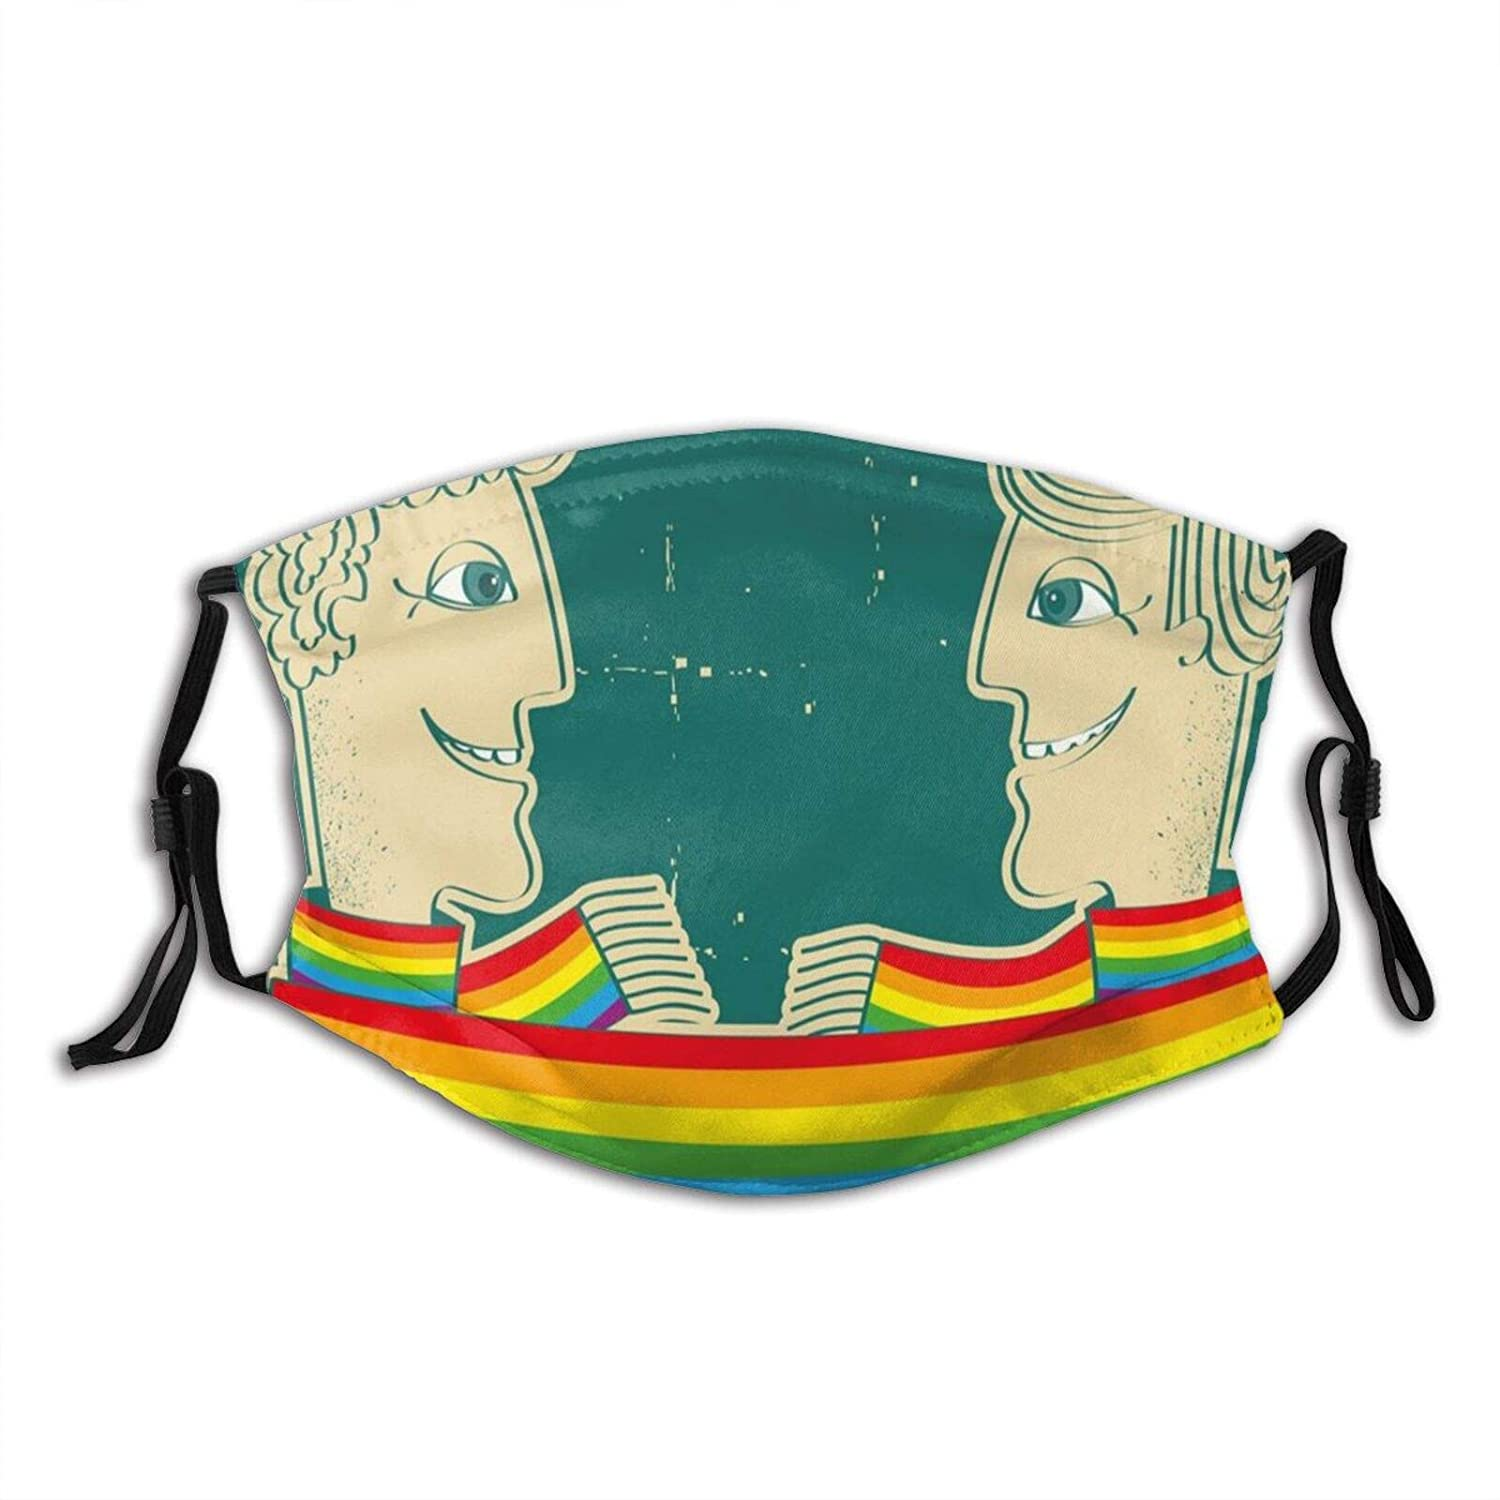 Fashionable Sales for sale Comfortable Windproof mask,Happy Gay With Tied Couple Rainb